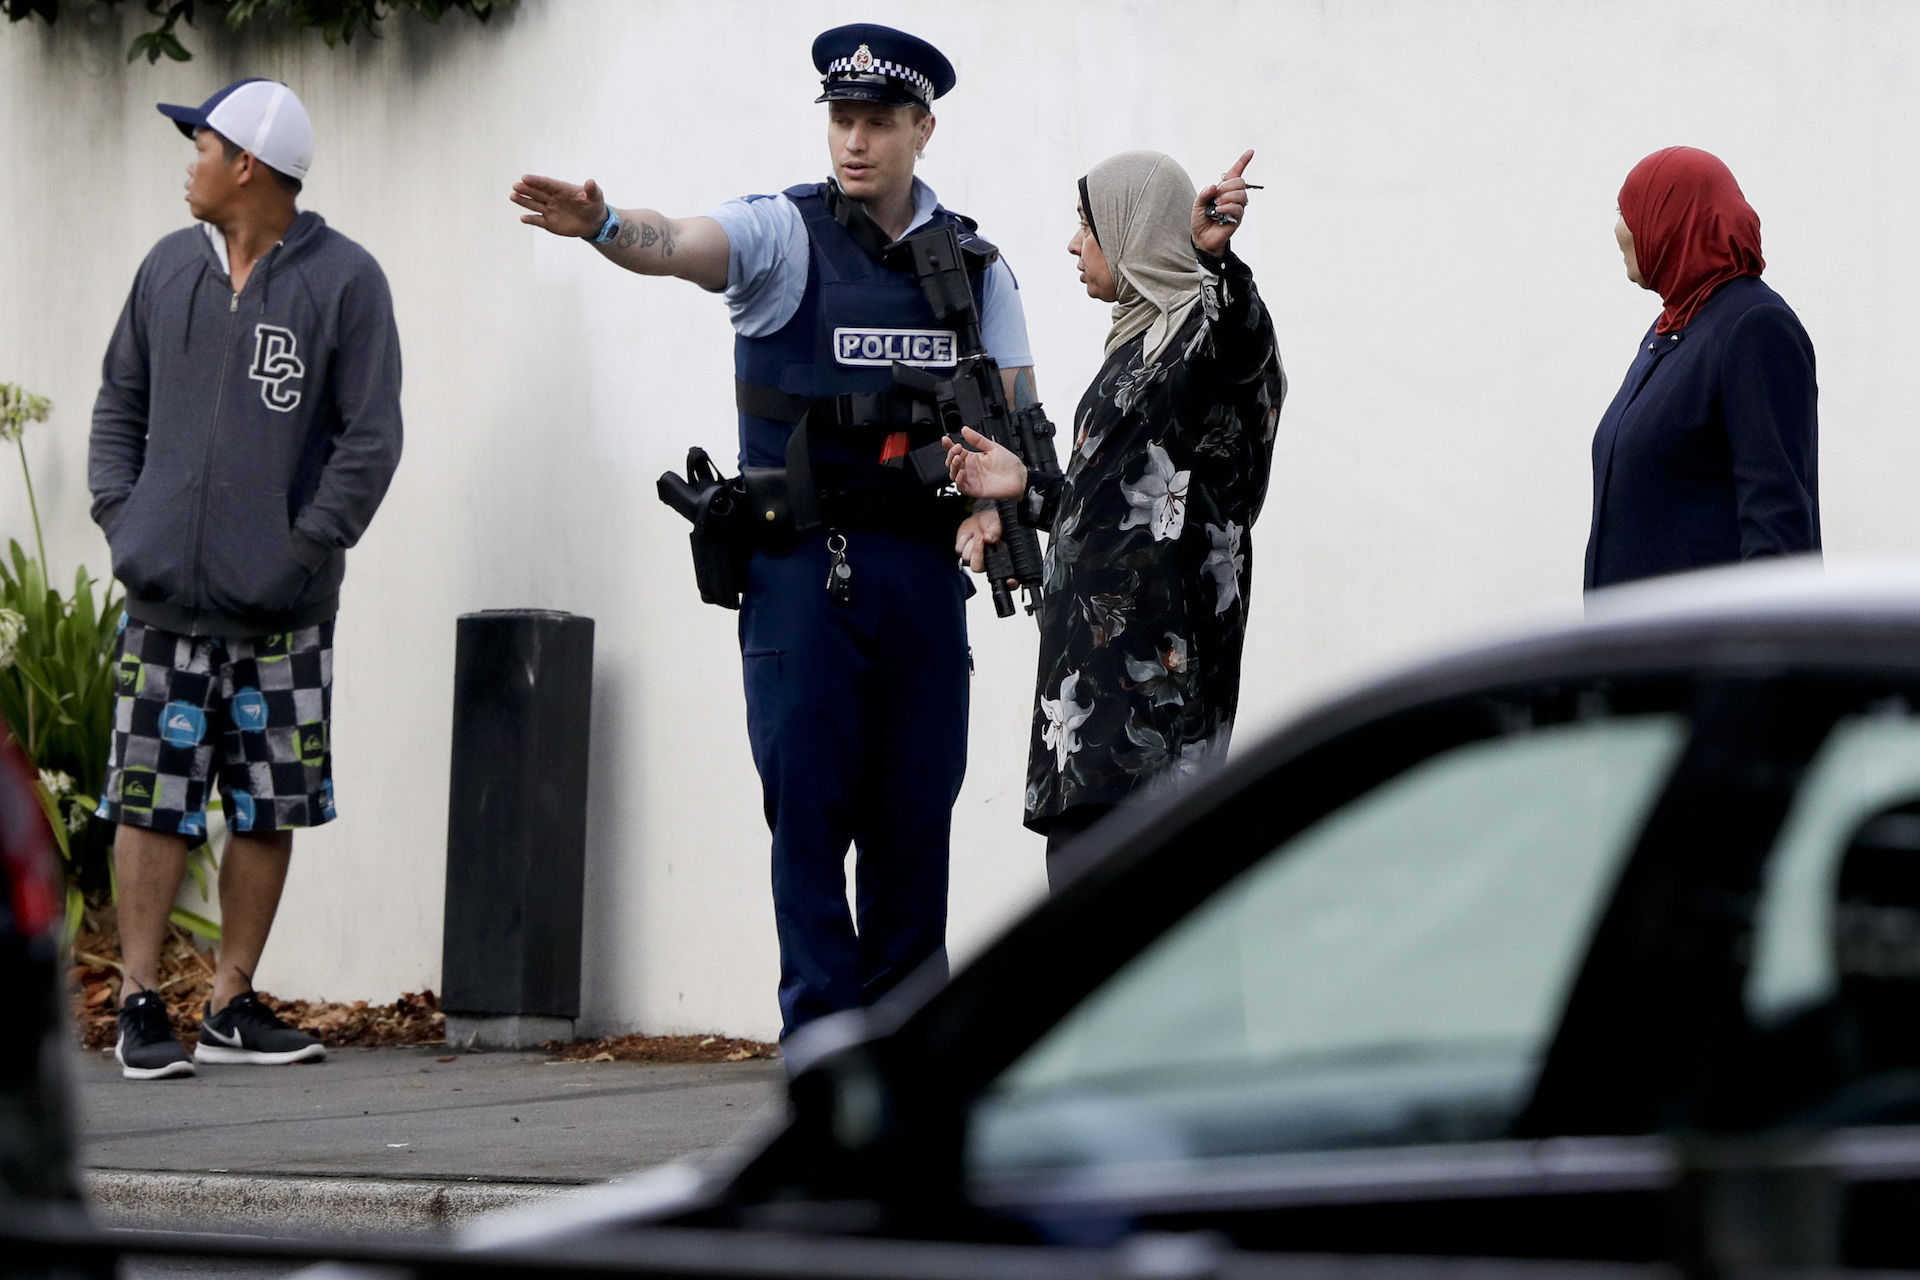 Decoding the racist memes the alleged New Zealand shooter used to